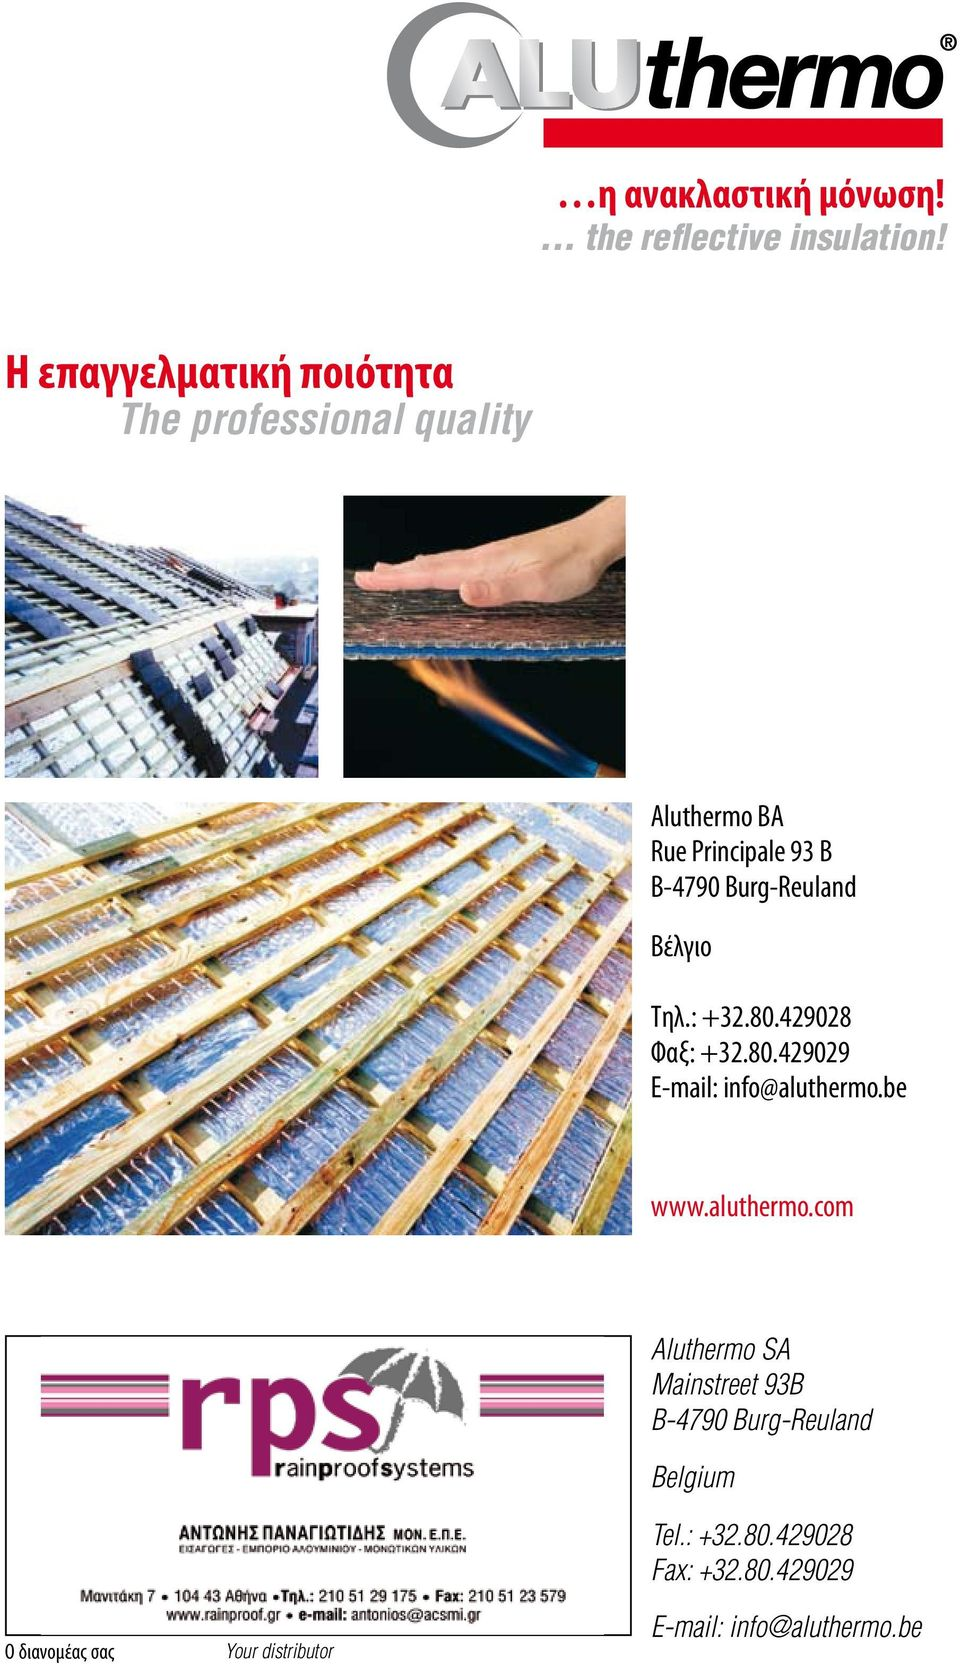 Burg-Reuland Βέλγιο Τηλ.: +32.80.429028 Φαξ: +32.80.429029 E-mail: info@aluthermo.